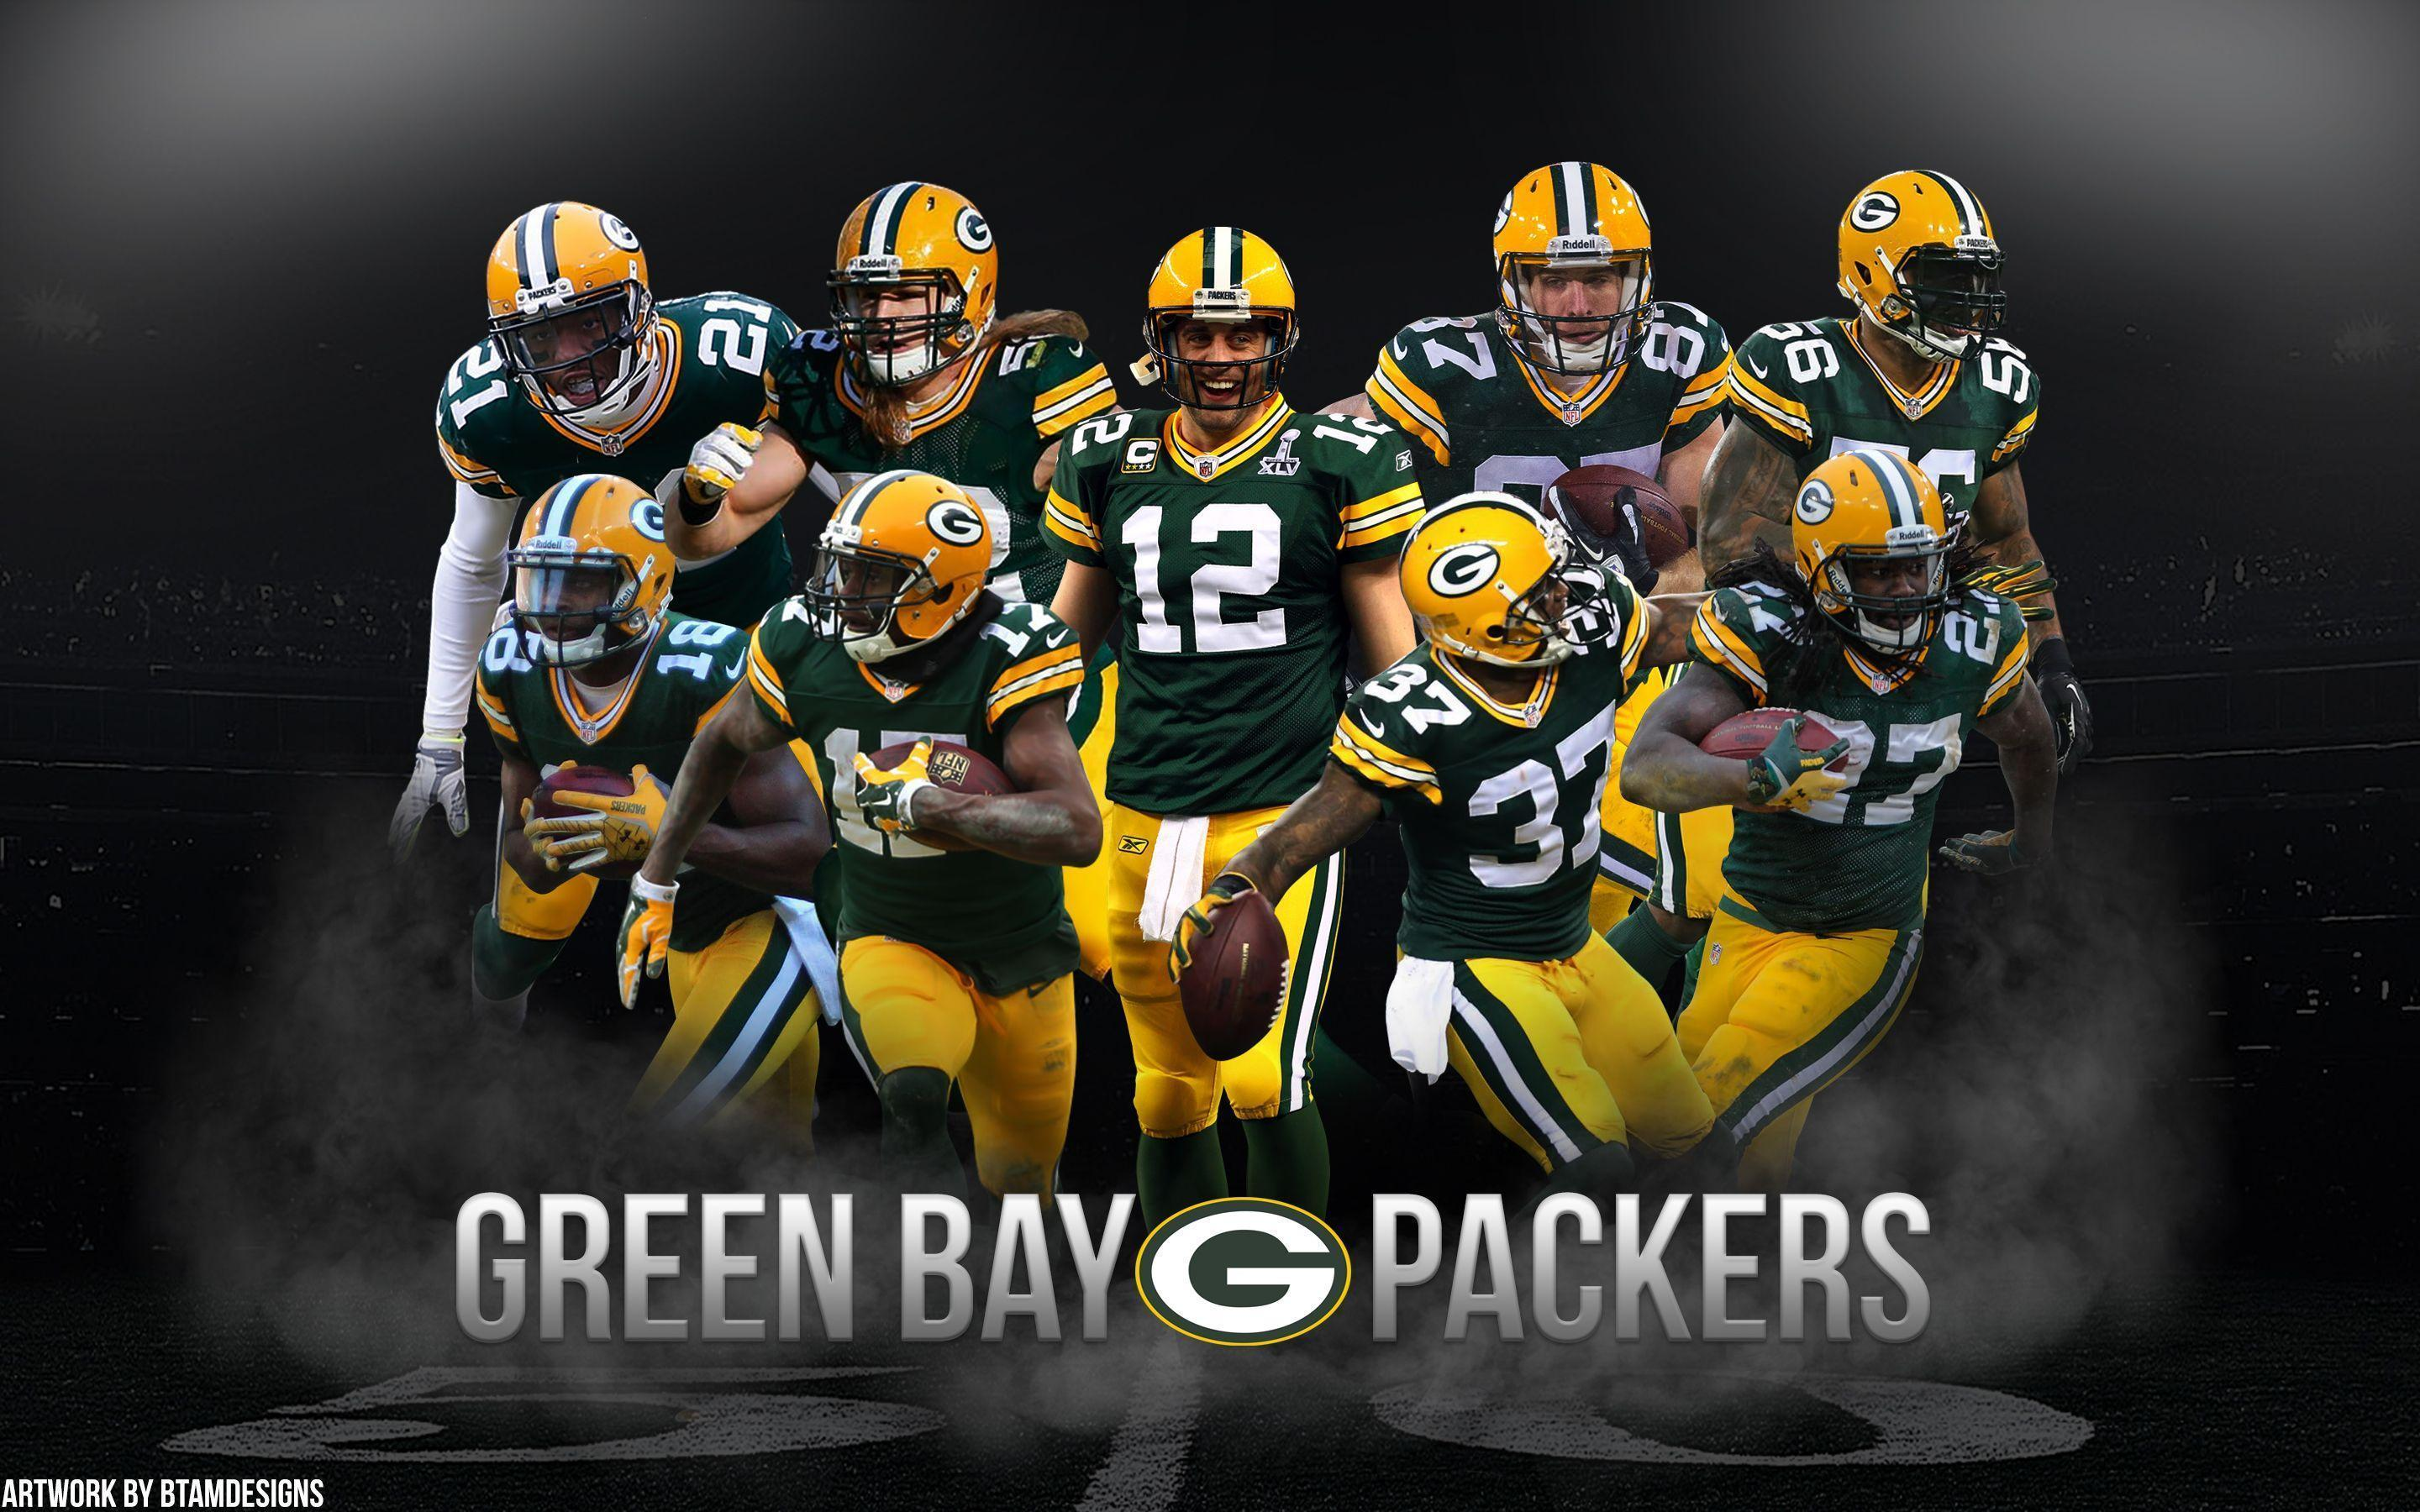 green bay packers wallpaper 2016 - photo #12